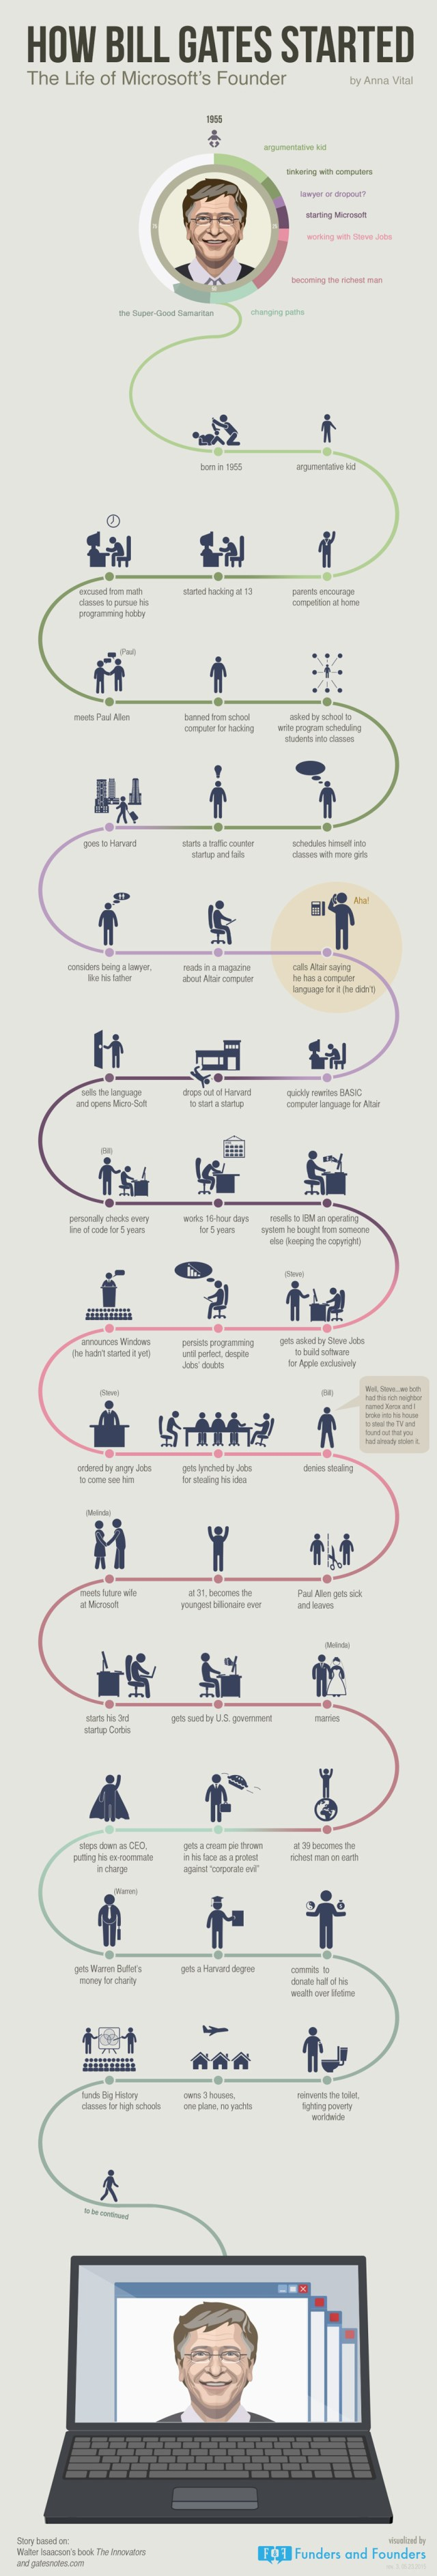 How Bill Gates Started